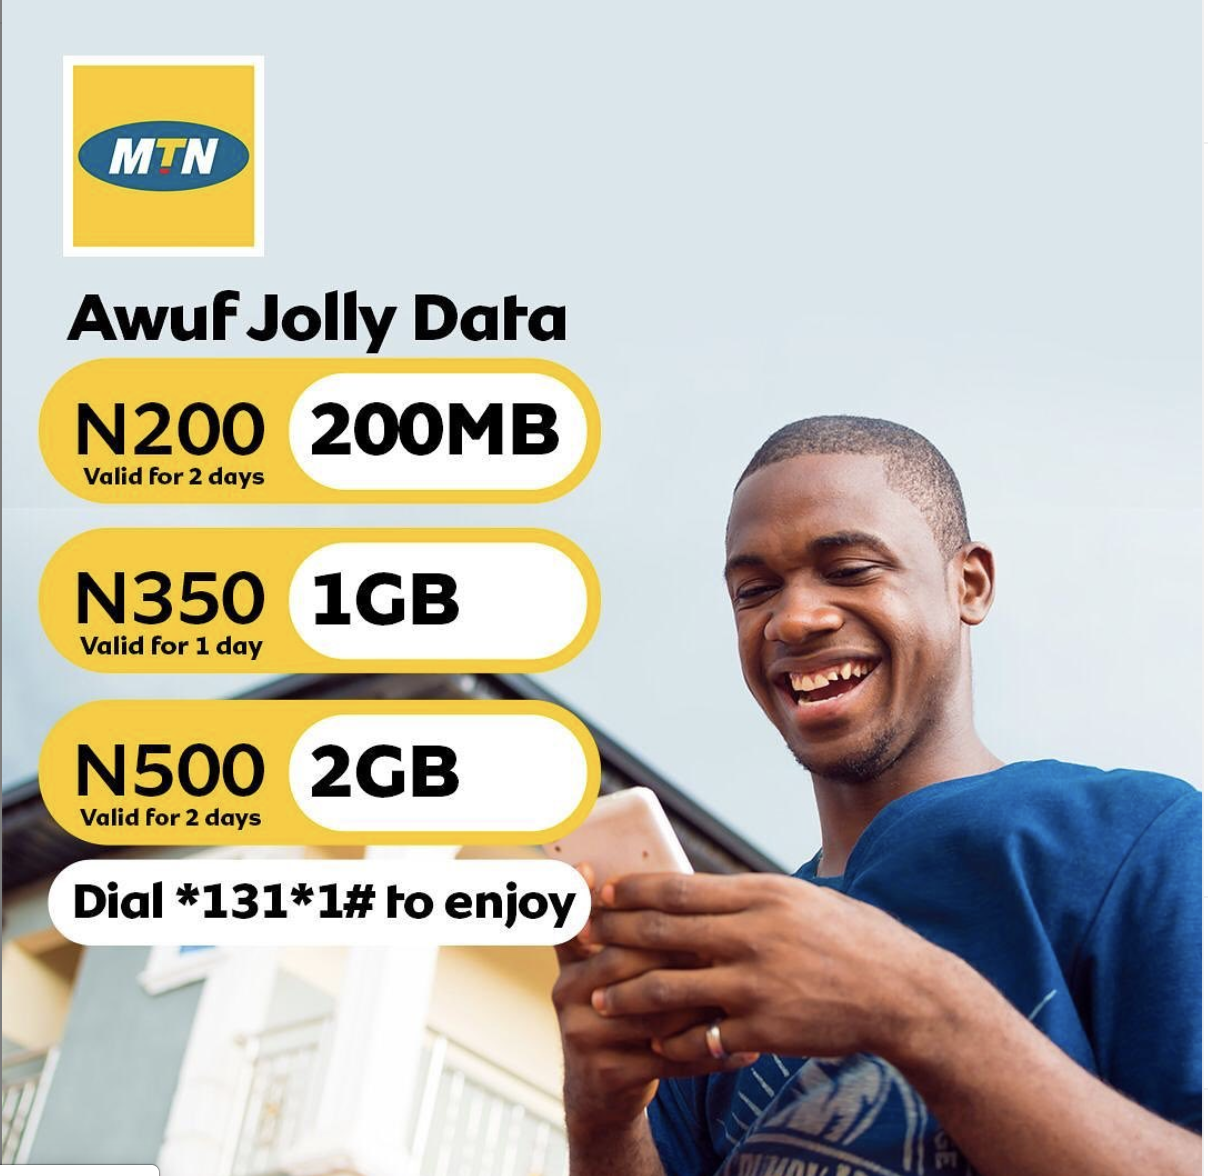 MTN Nigeria Wants To Help Your Love Life, Heres How